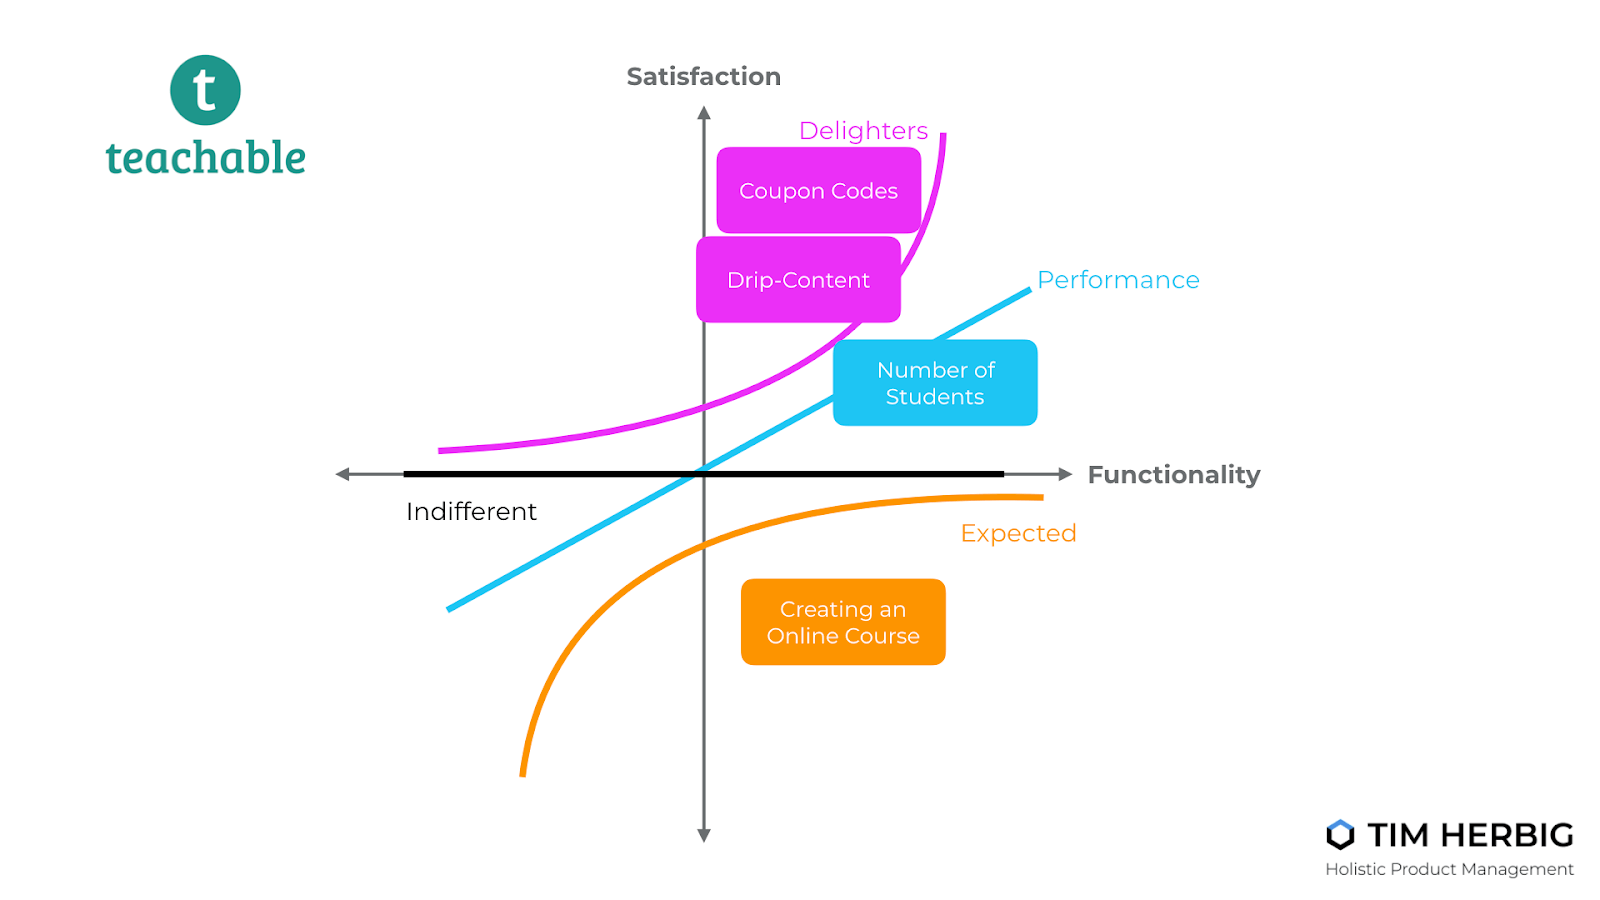 Teachable Kano Model